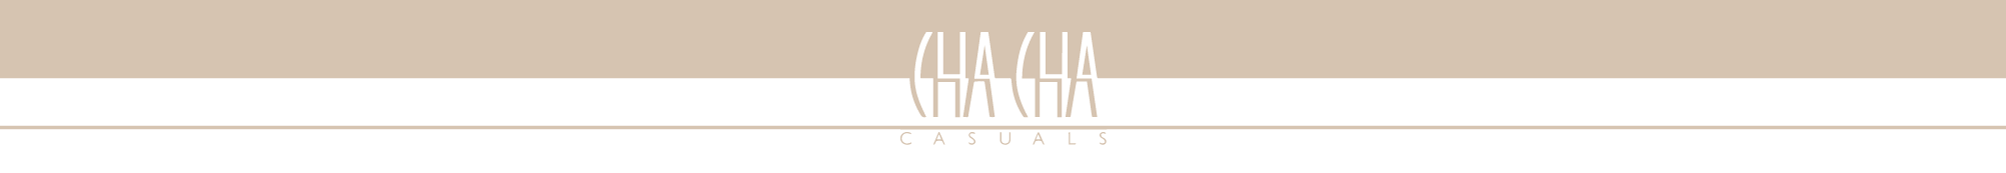 ChaCha casuals Logo